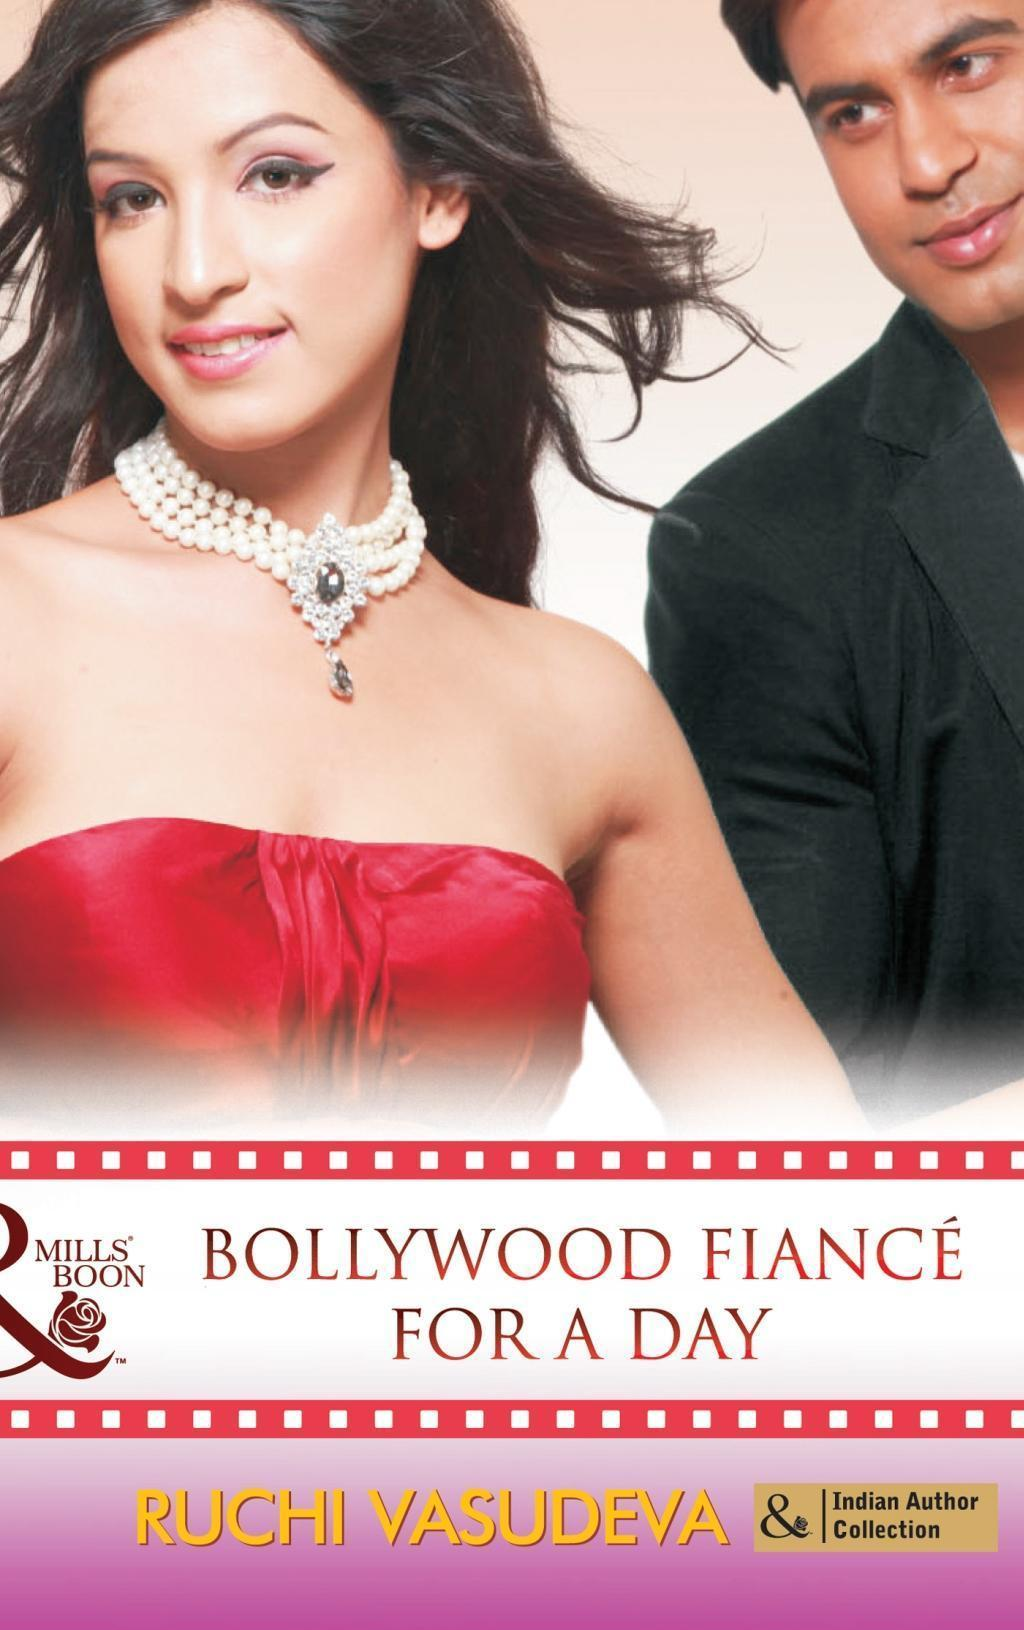 Bollywood Fiance for a Day